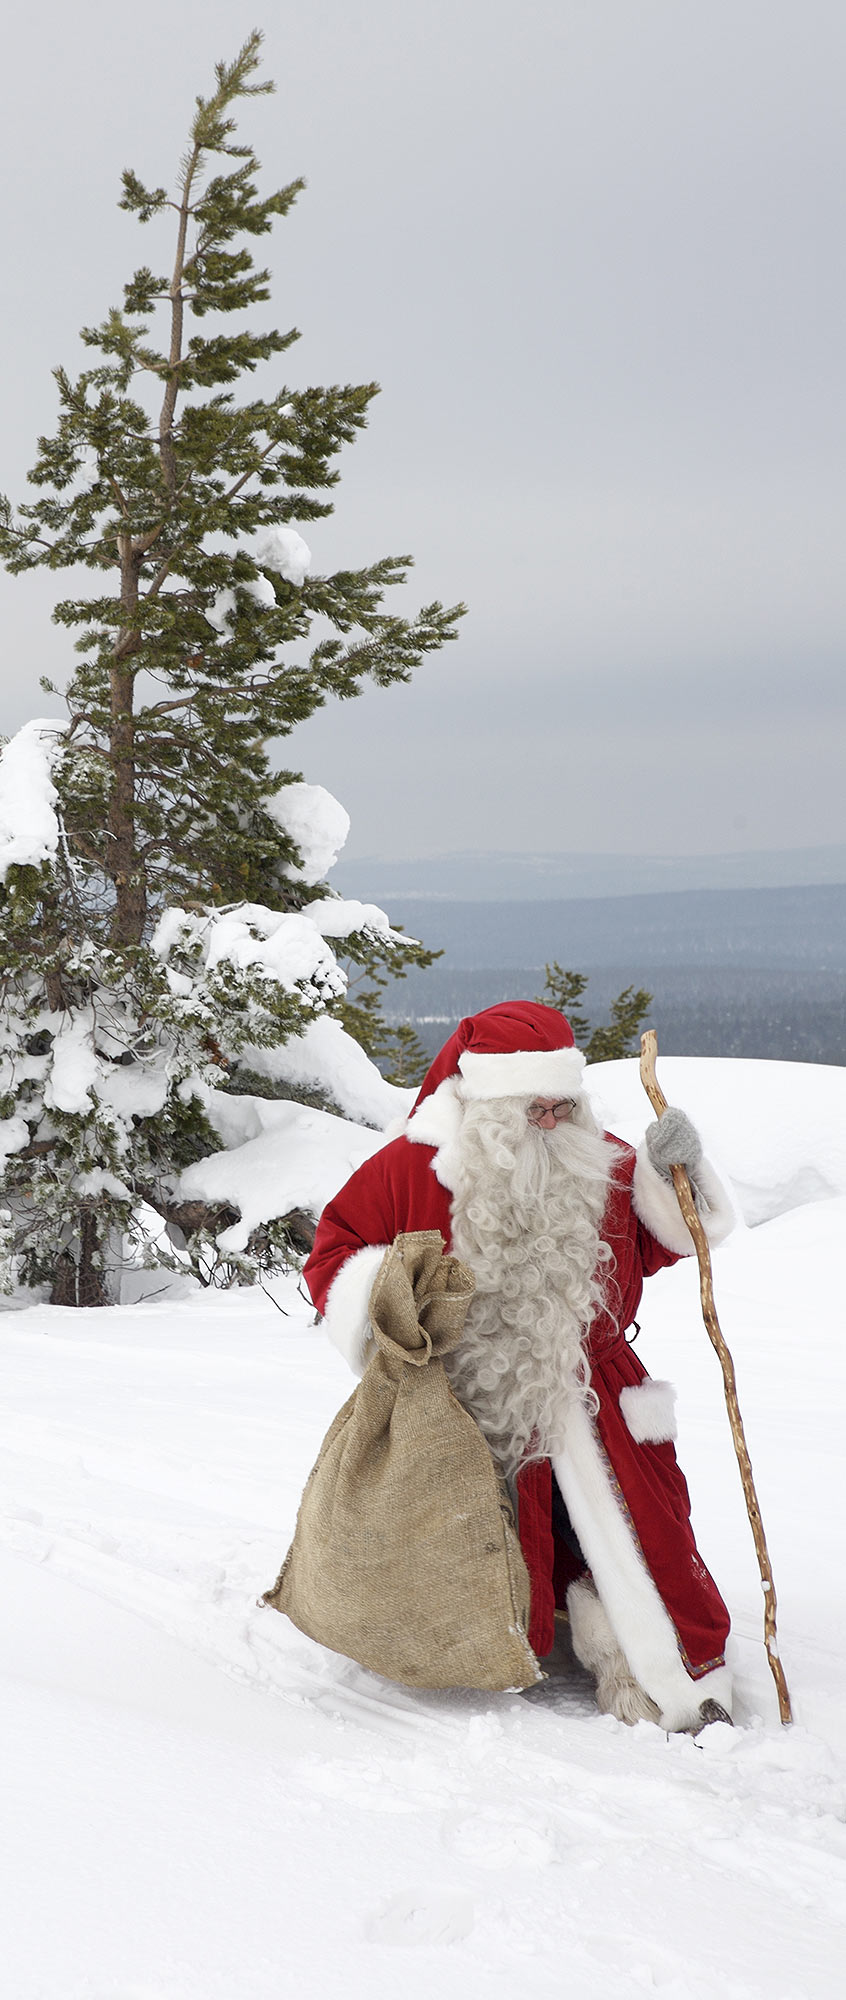 Santa Clause in Levi, Finland.